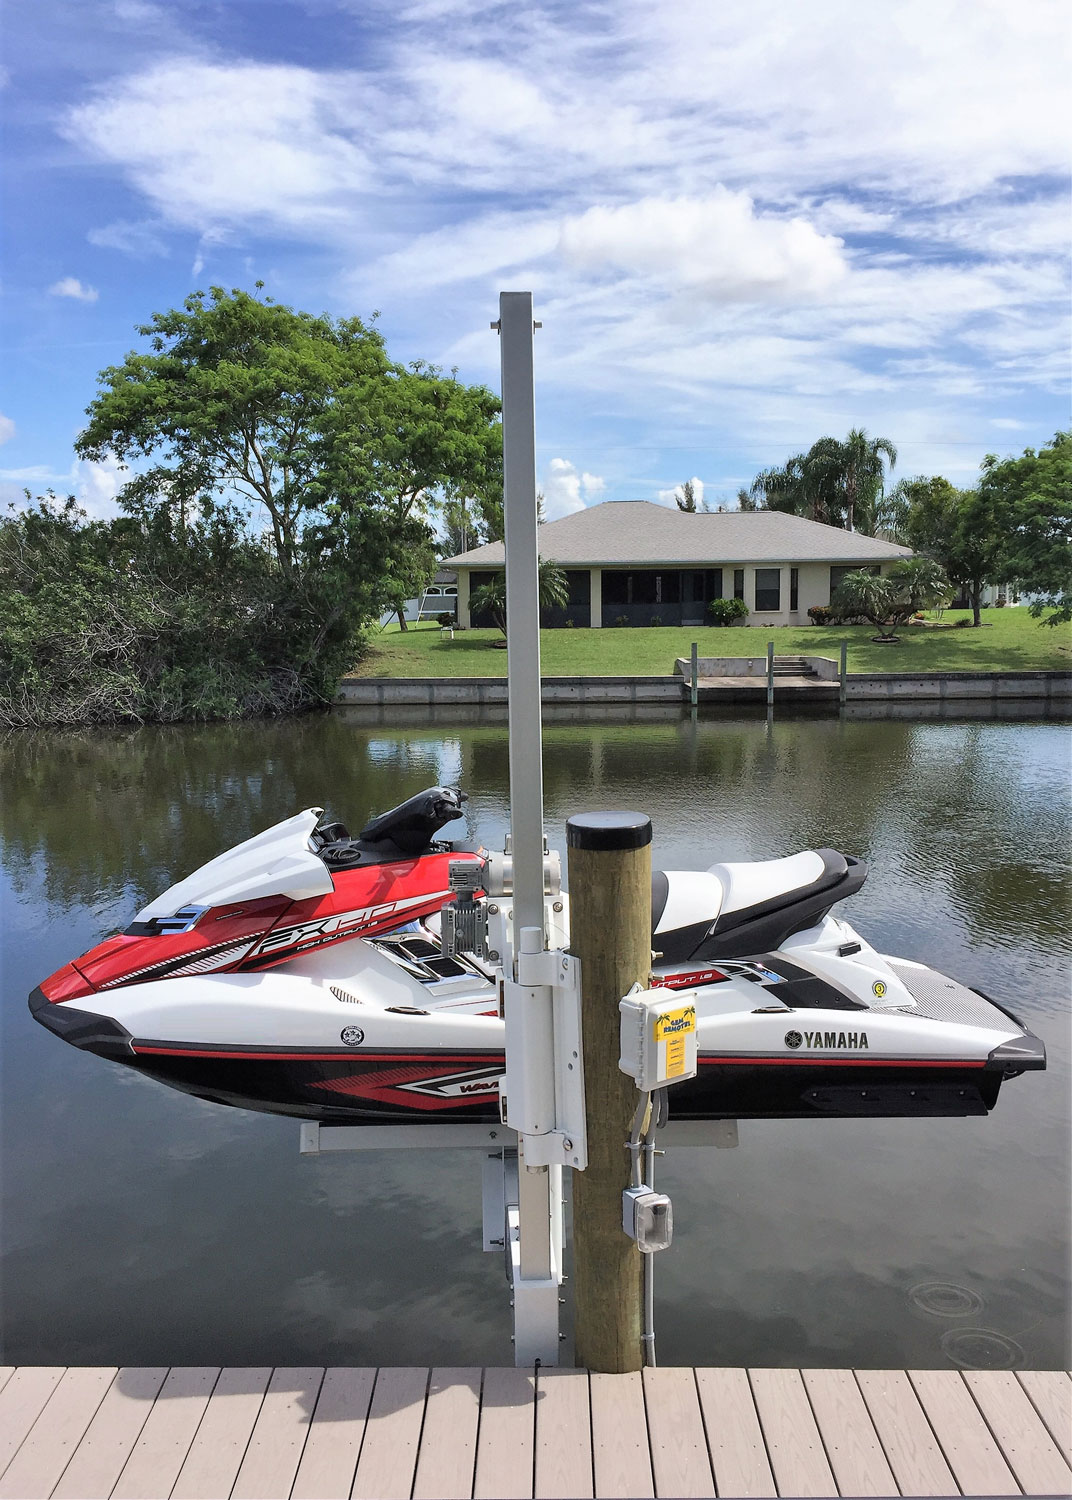 Jet Ski Lifts For Sale >> Up N Over Pwc Lift Jet Ski Lifts Boat Lift U S